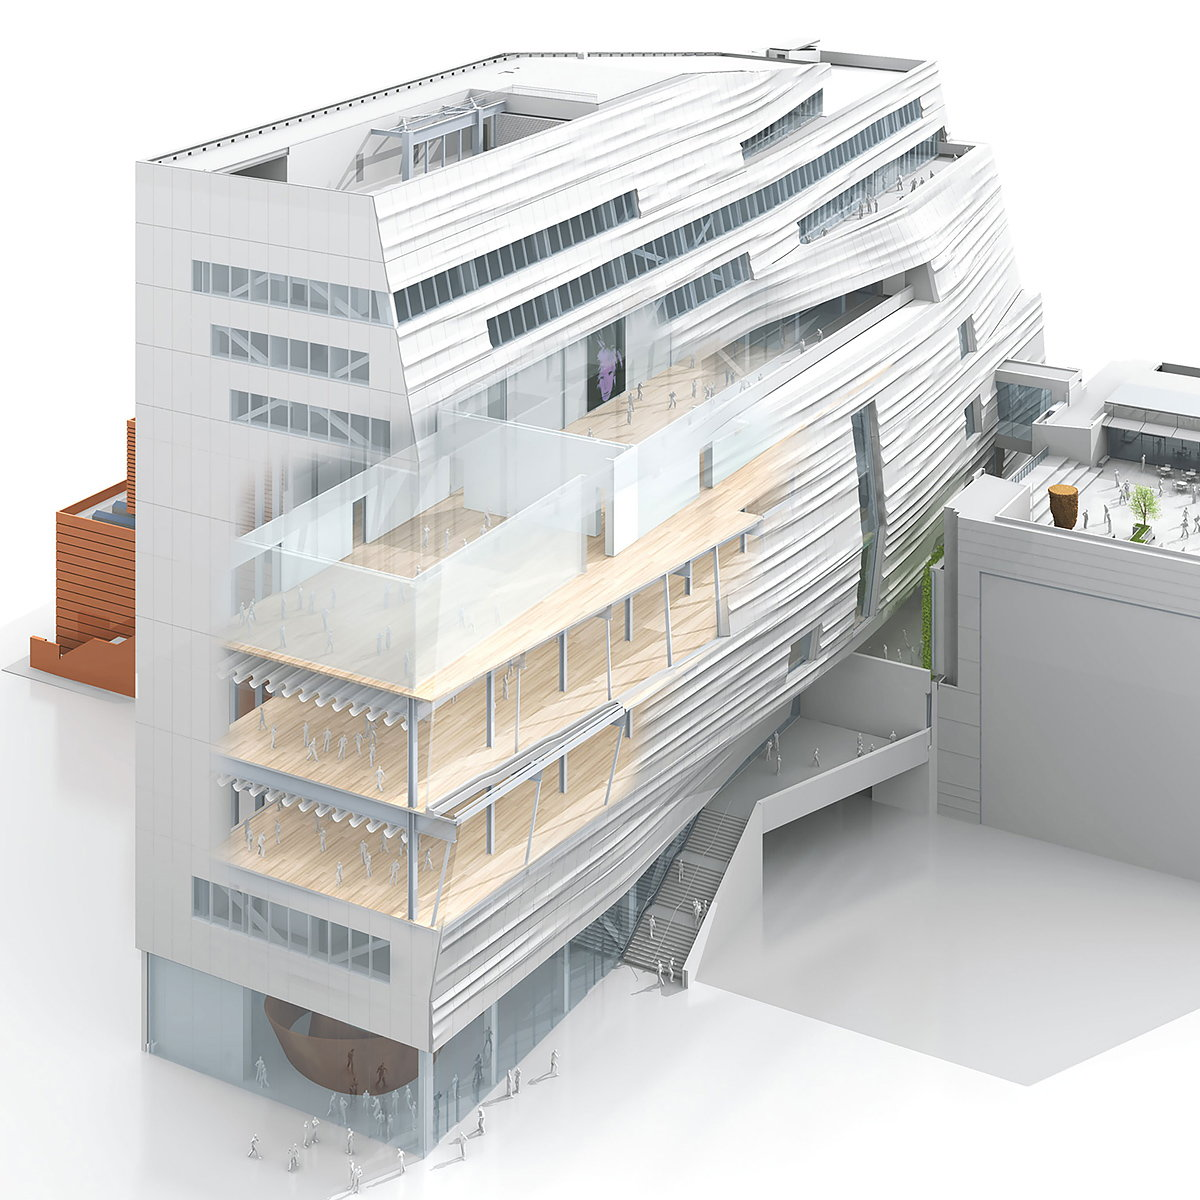 WIRED Unveils Scroll-through, 3D Rendering of the New SF MoMA